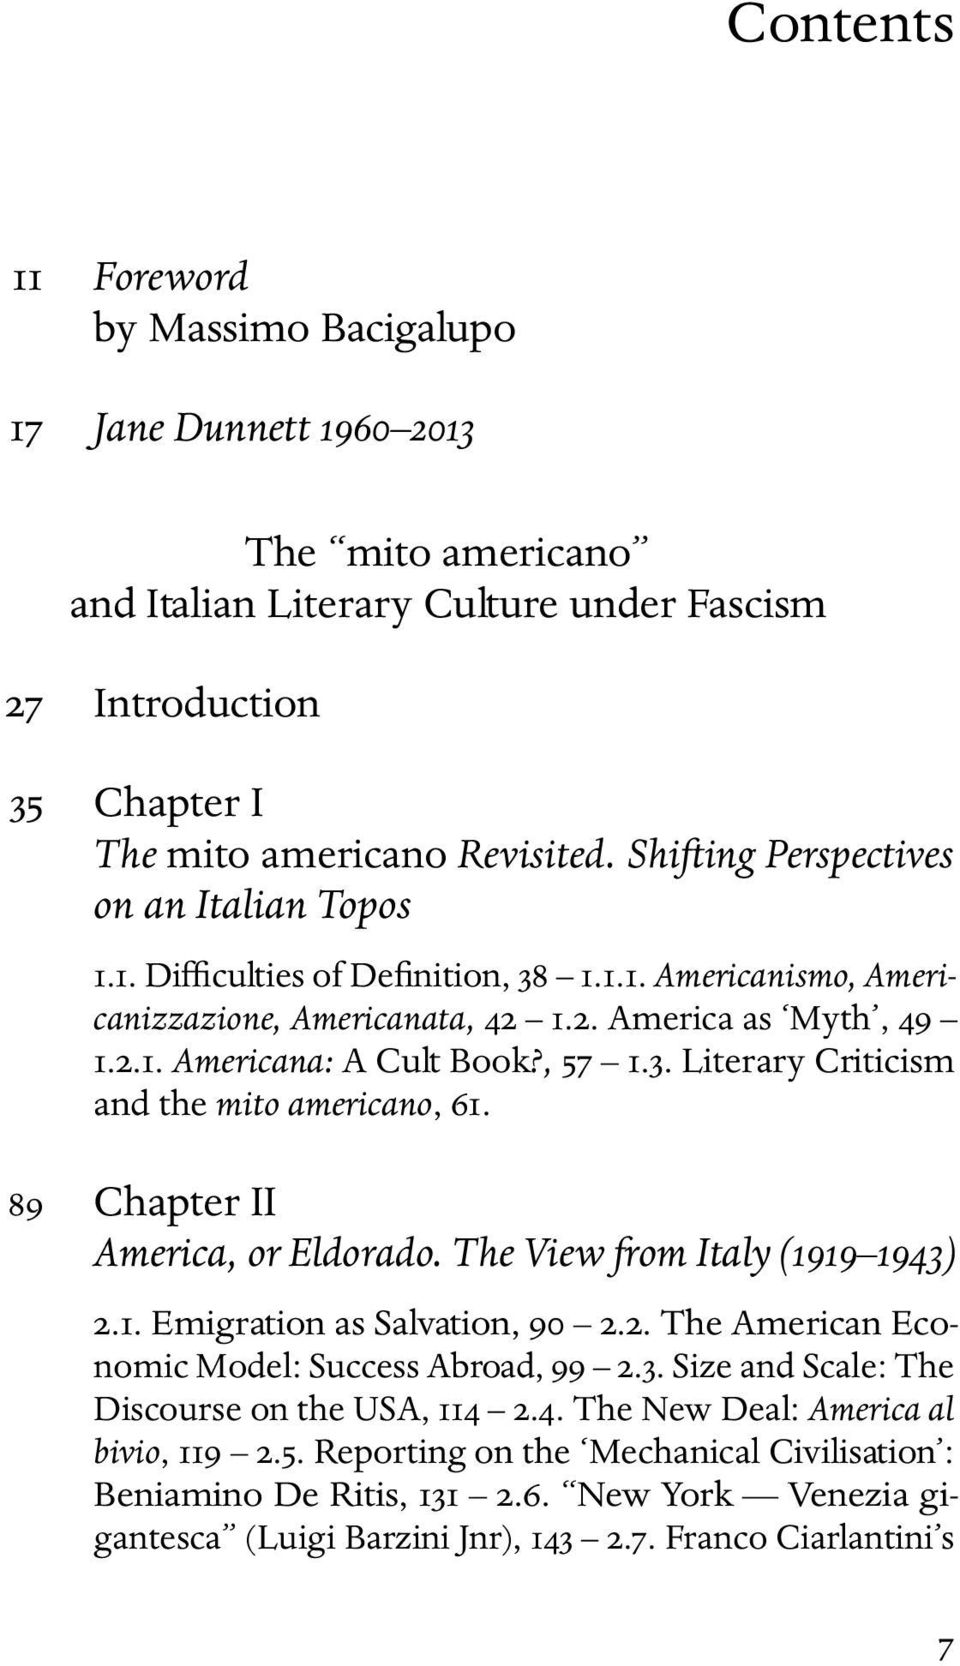 89 Chapter II America, or Eldorado. The View from Italy (1919 1943) 2.1. Emigration as Salvation, 90 2.2. The American Economic Model: Success Abroad, 99 2.3. Size and Scale: The Discourse on the USA, 114 2.